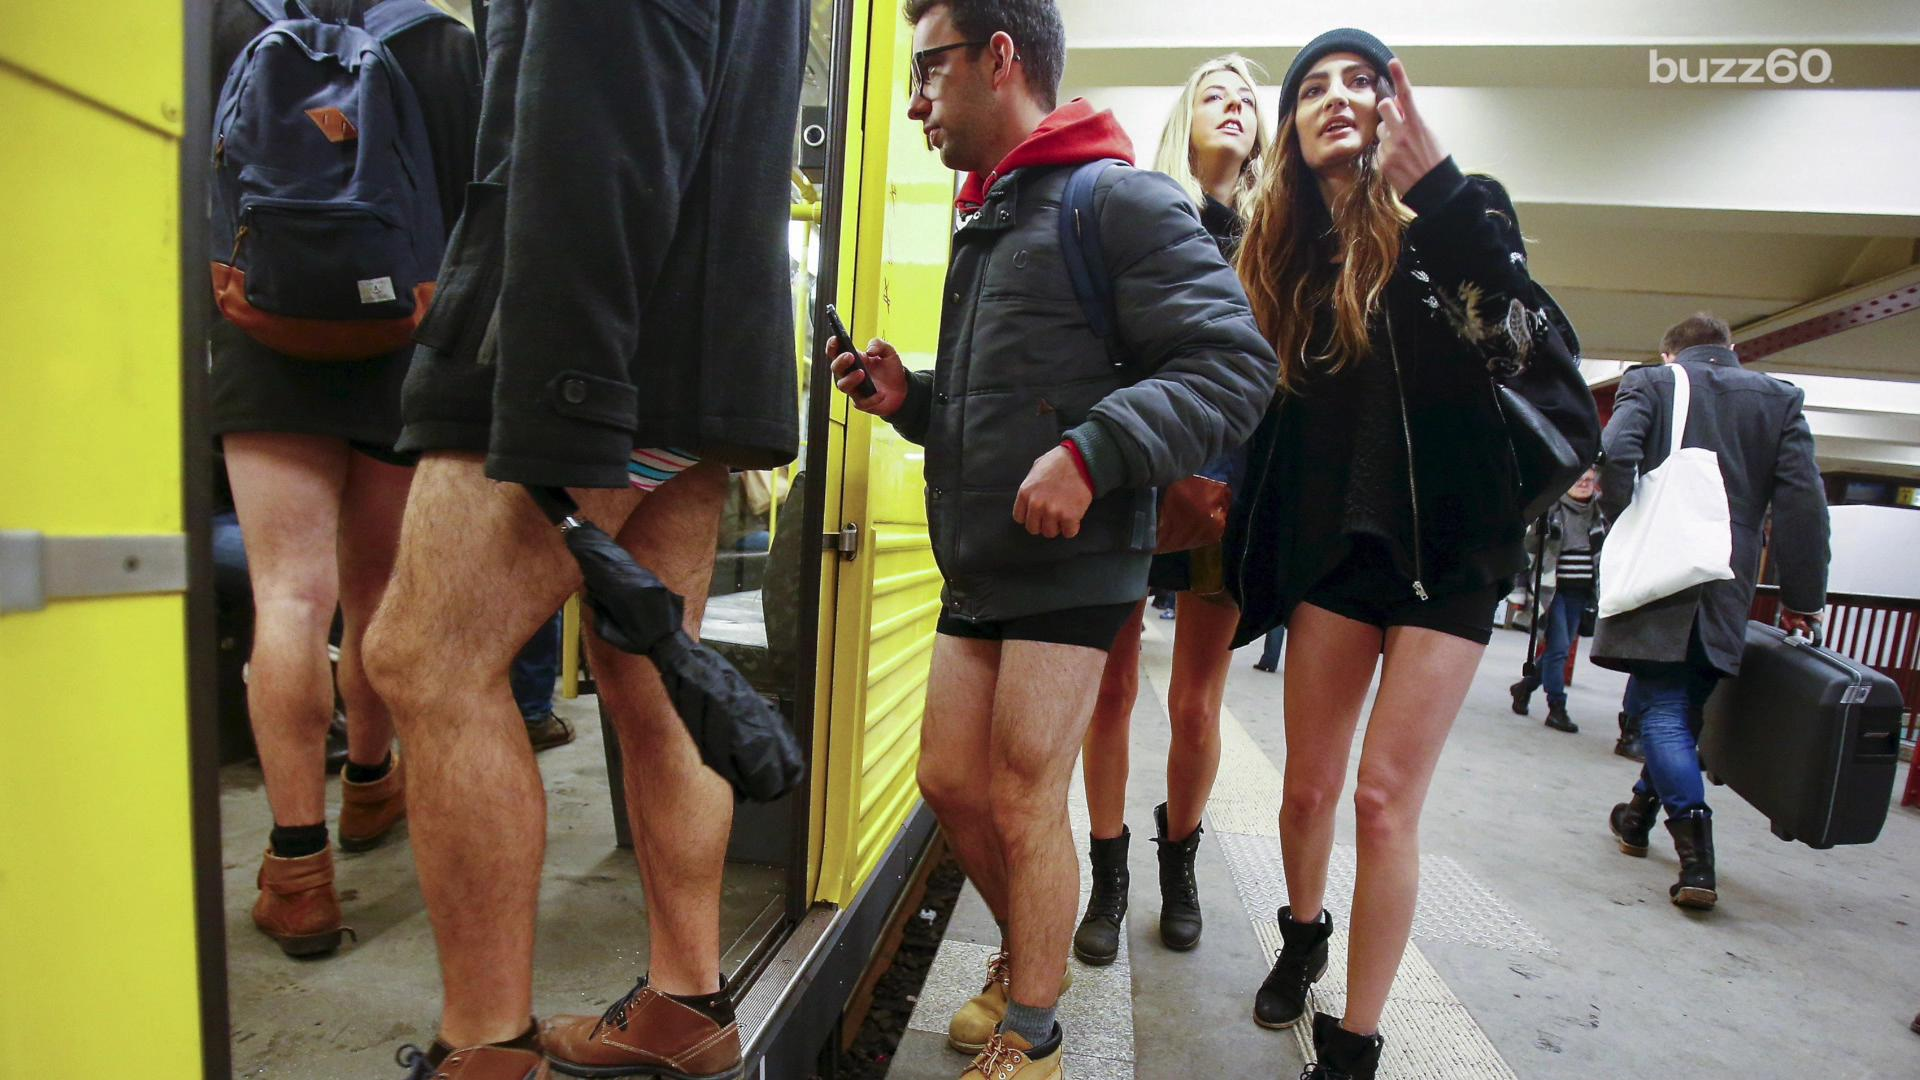 The No Pants Subway Ride spreads across the globe to thousands